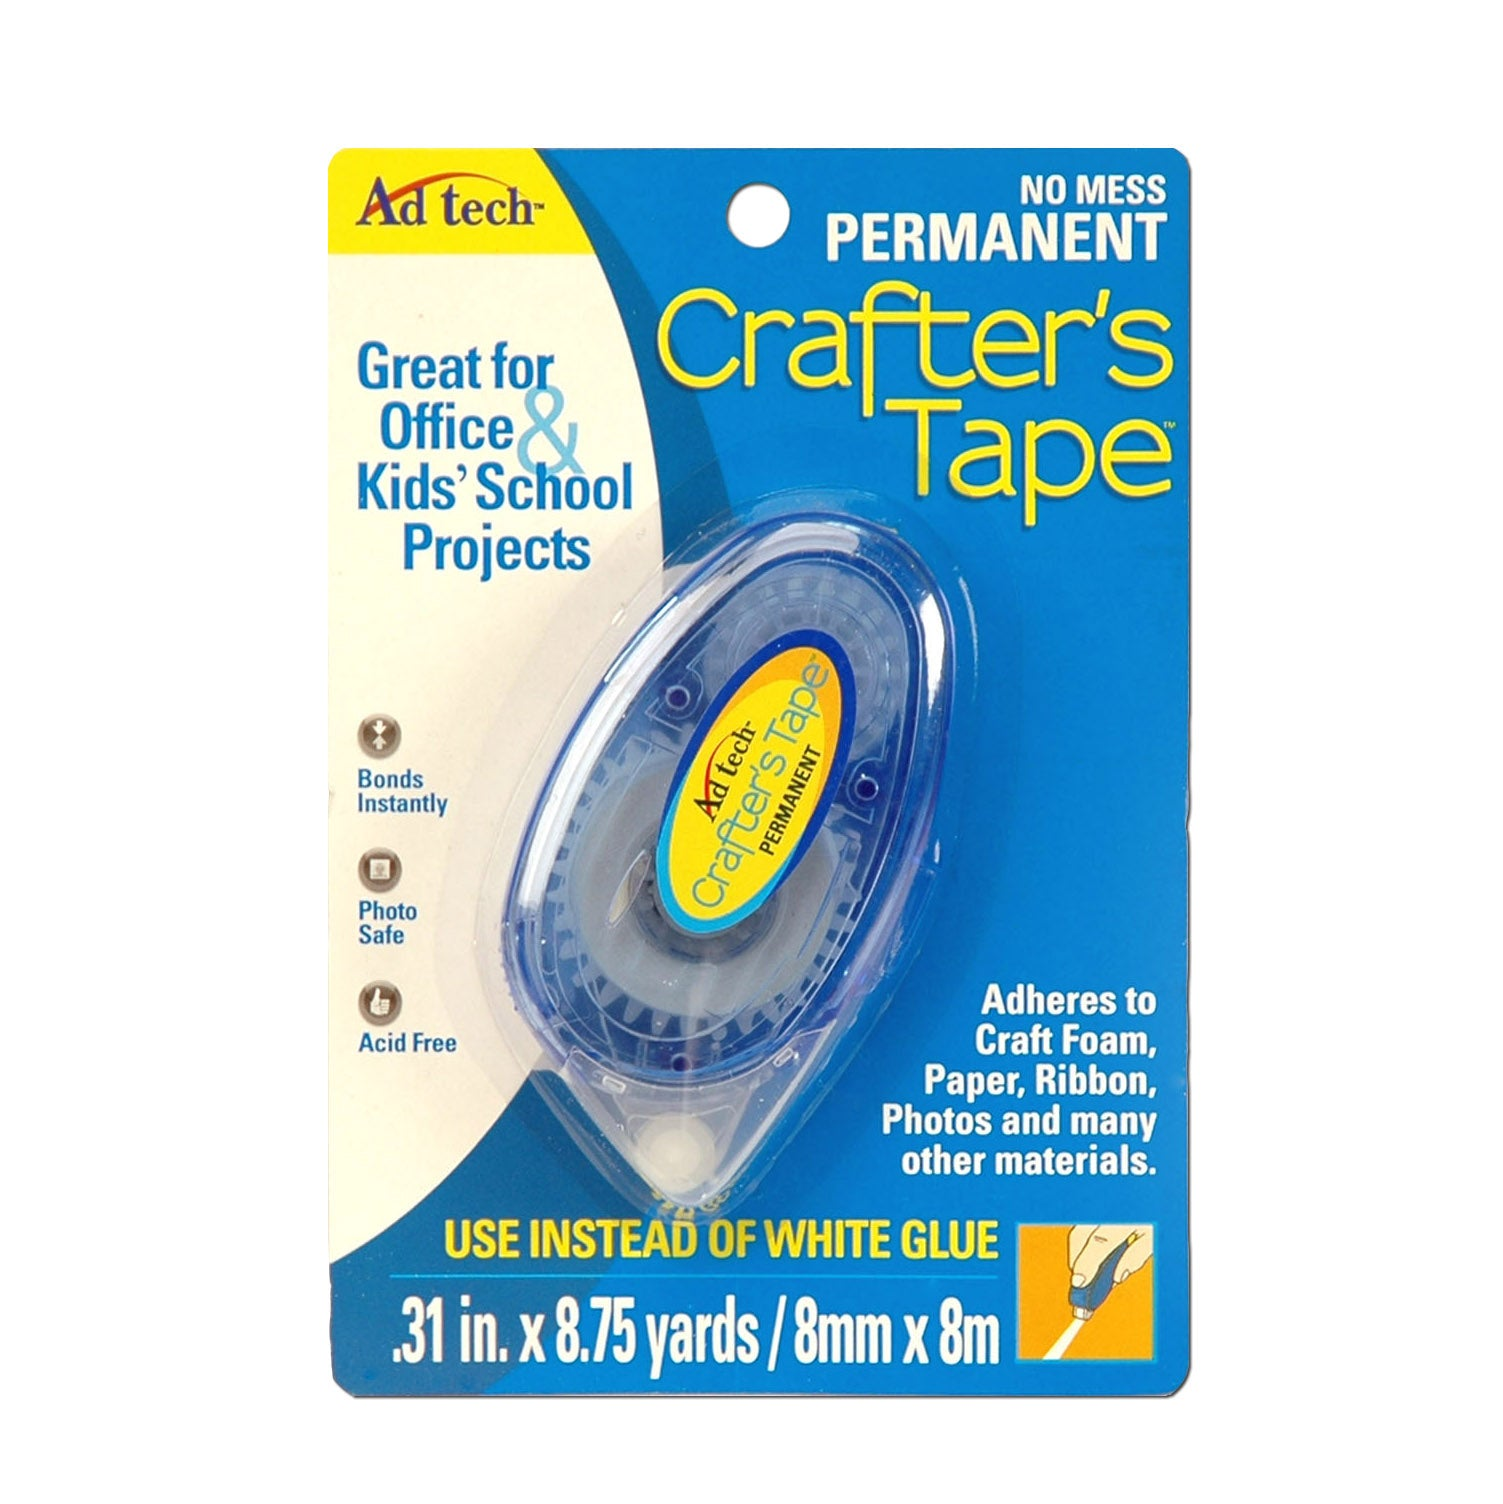 Permanent Glue Runner Crafter's Tape